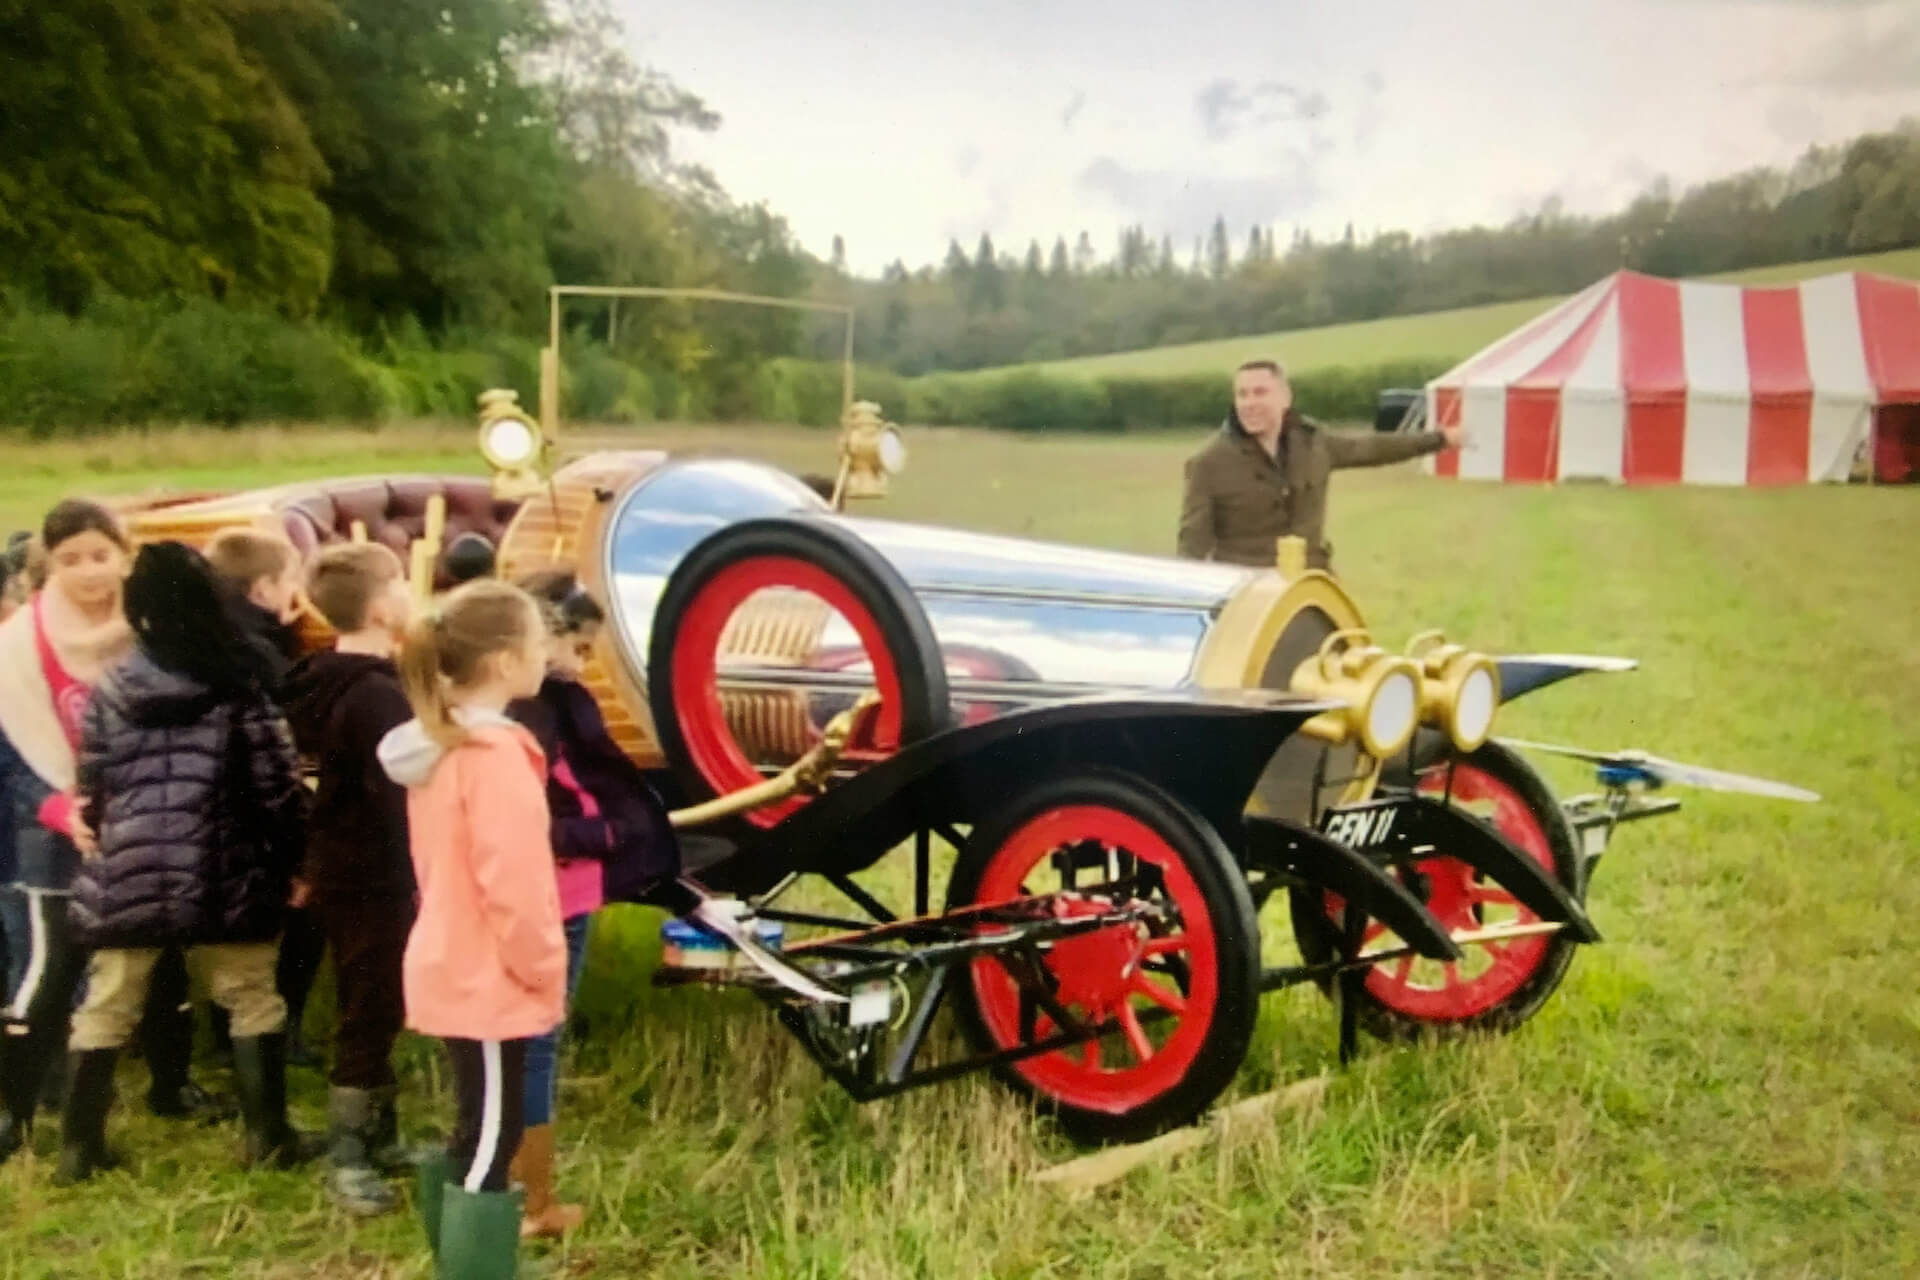 Chitty flies again channel 4 documentary 2020